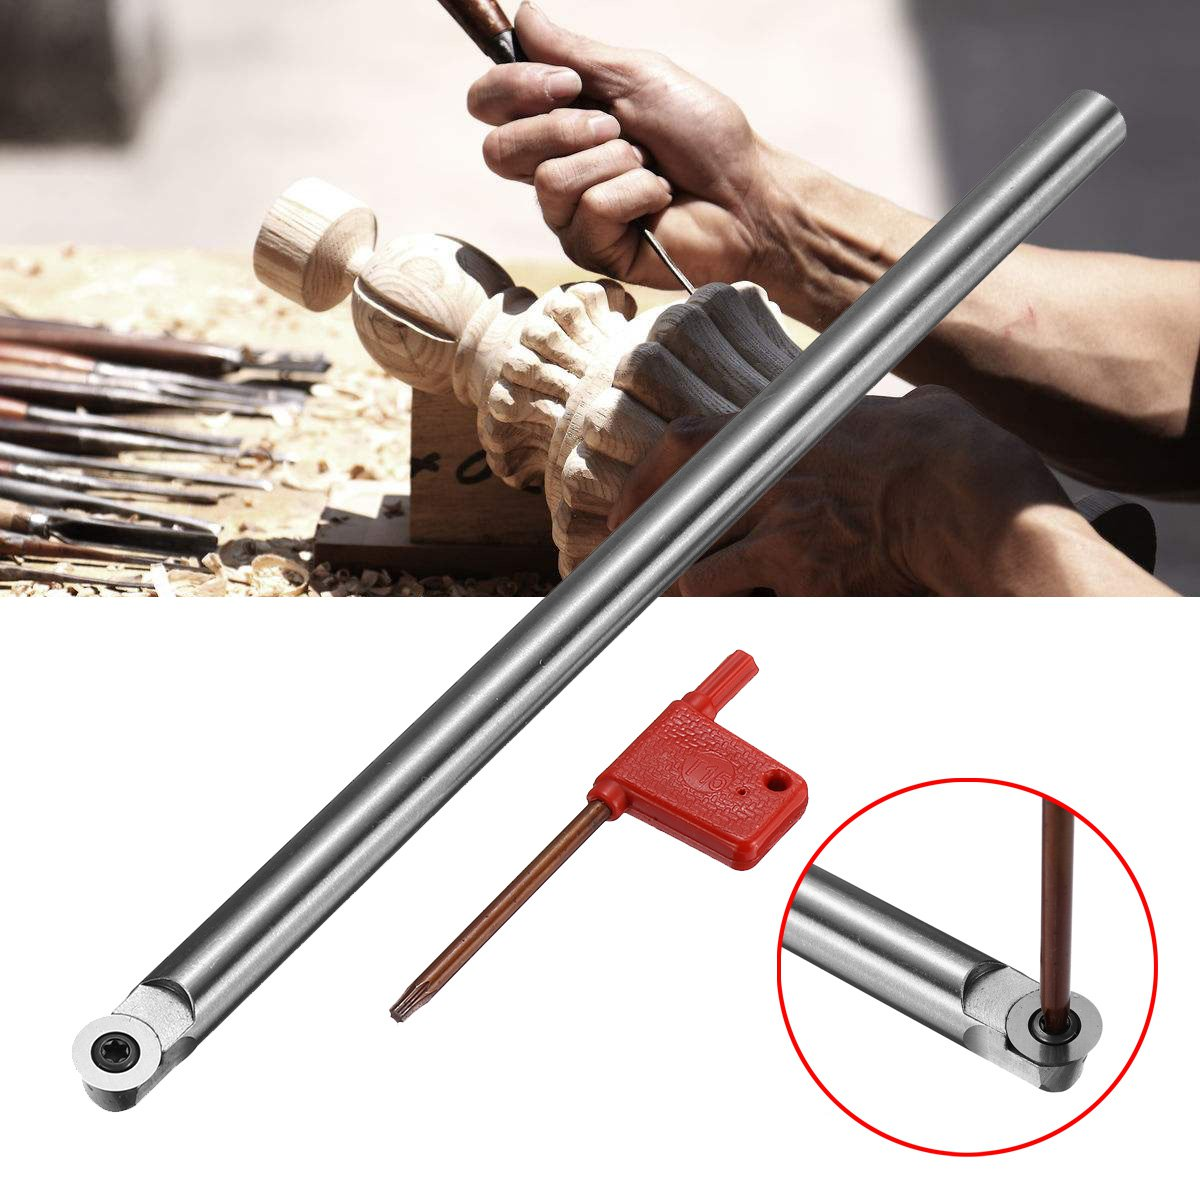 R6 250mm Wood Turning Tool Turning Chisel Round Shank with Wood Carbide Insert Cutter